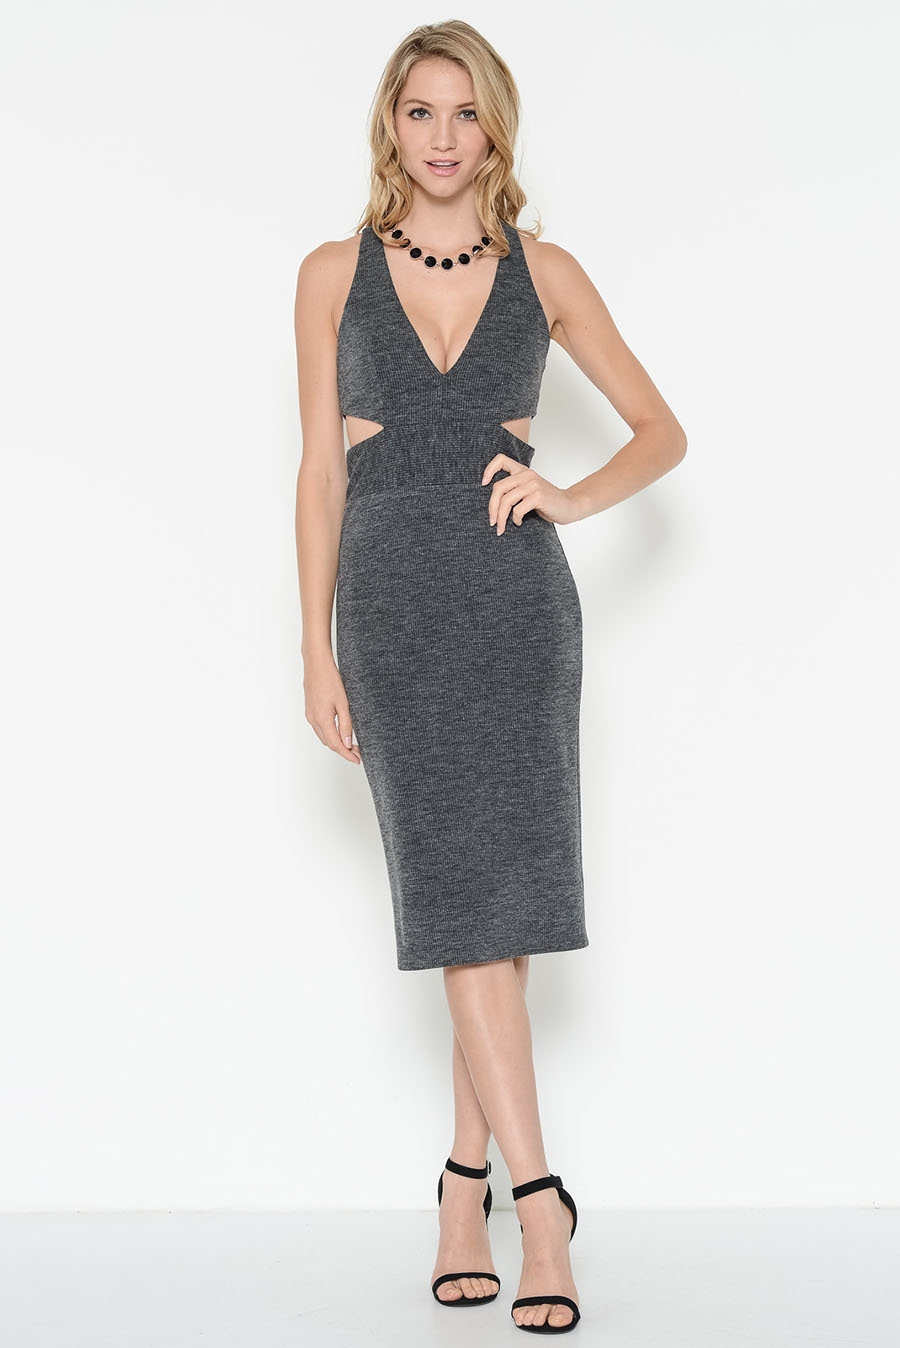 RIB DEEP NECK MIDI DRESS - orangeshine.com